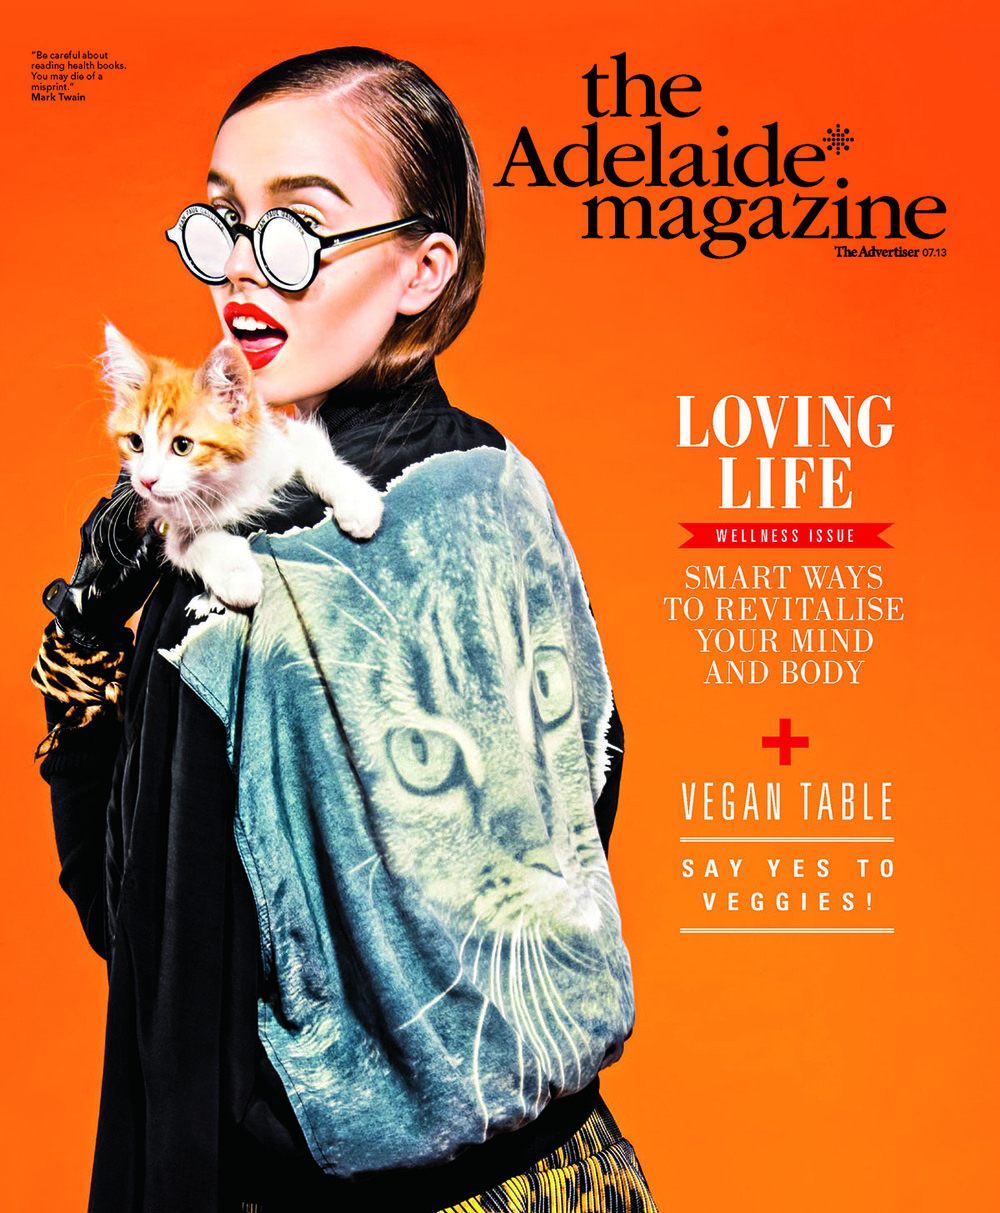 2013-July-AdelaideMagazine-1@2x.jpg